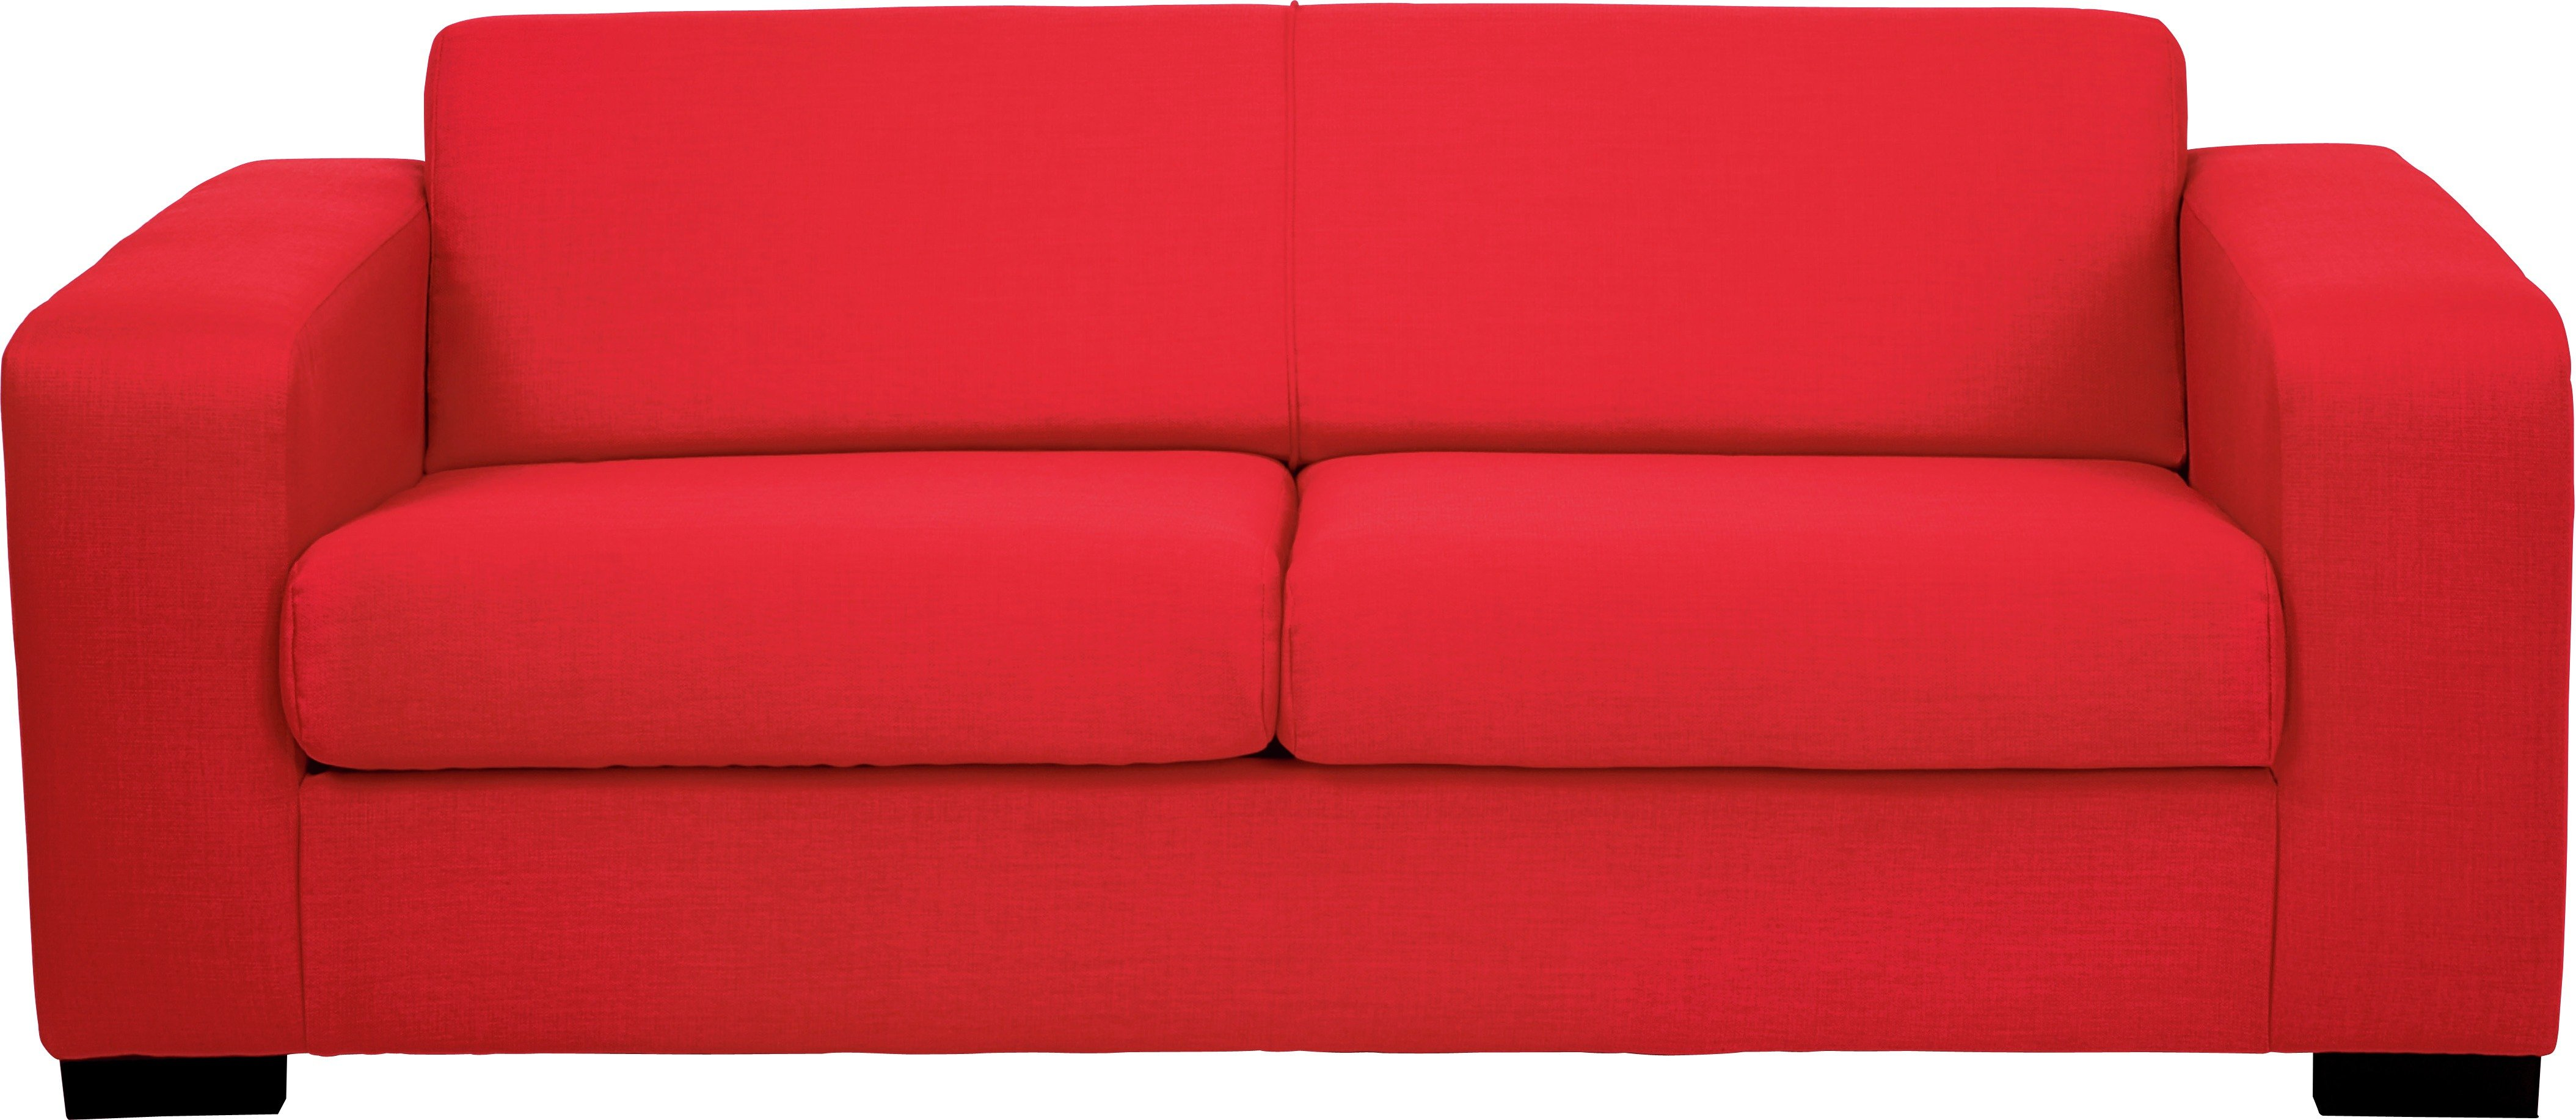 Image of Hygena - Ava - 2 Seater Fabric - Sofa Bed - Red